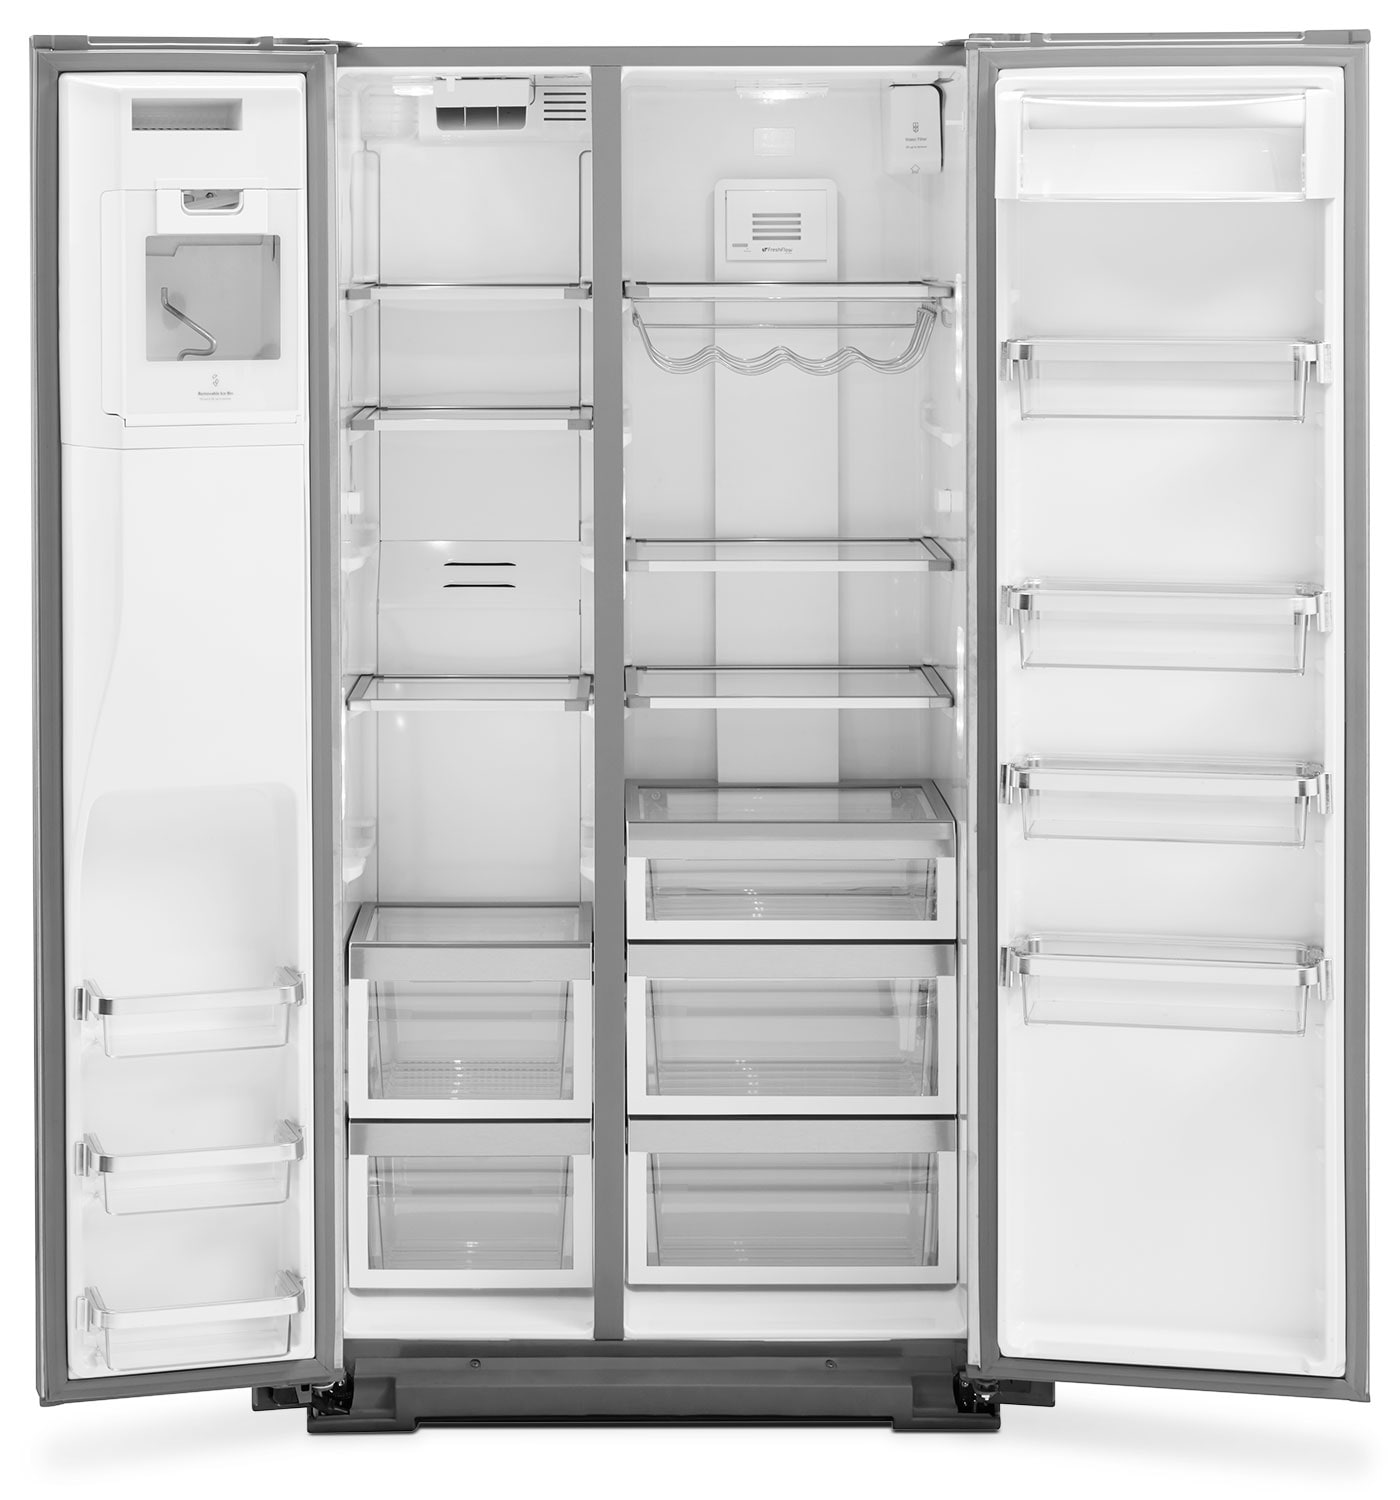 kitchenaid 22 6 cu ft counter depth side by side refrigerator